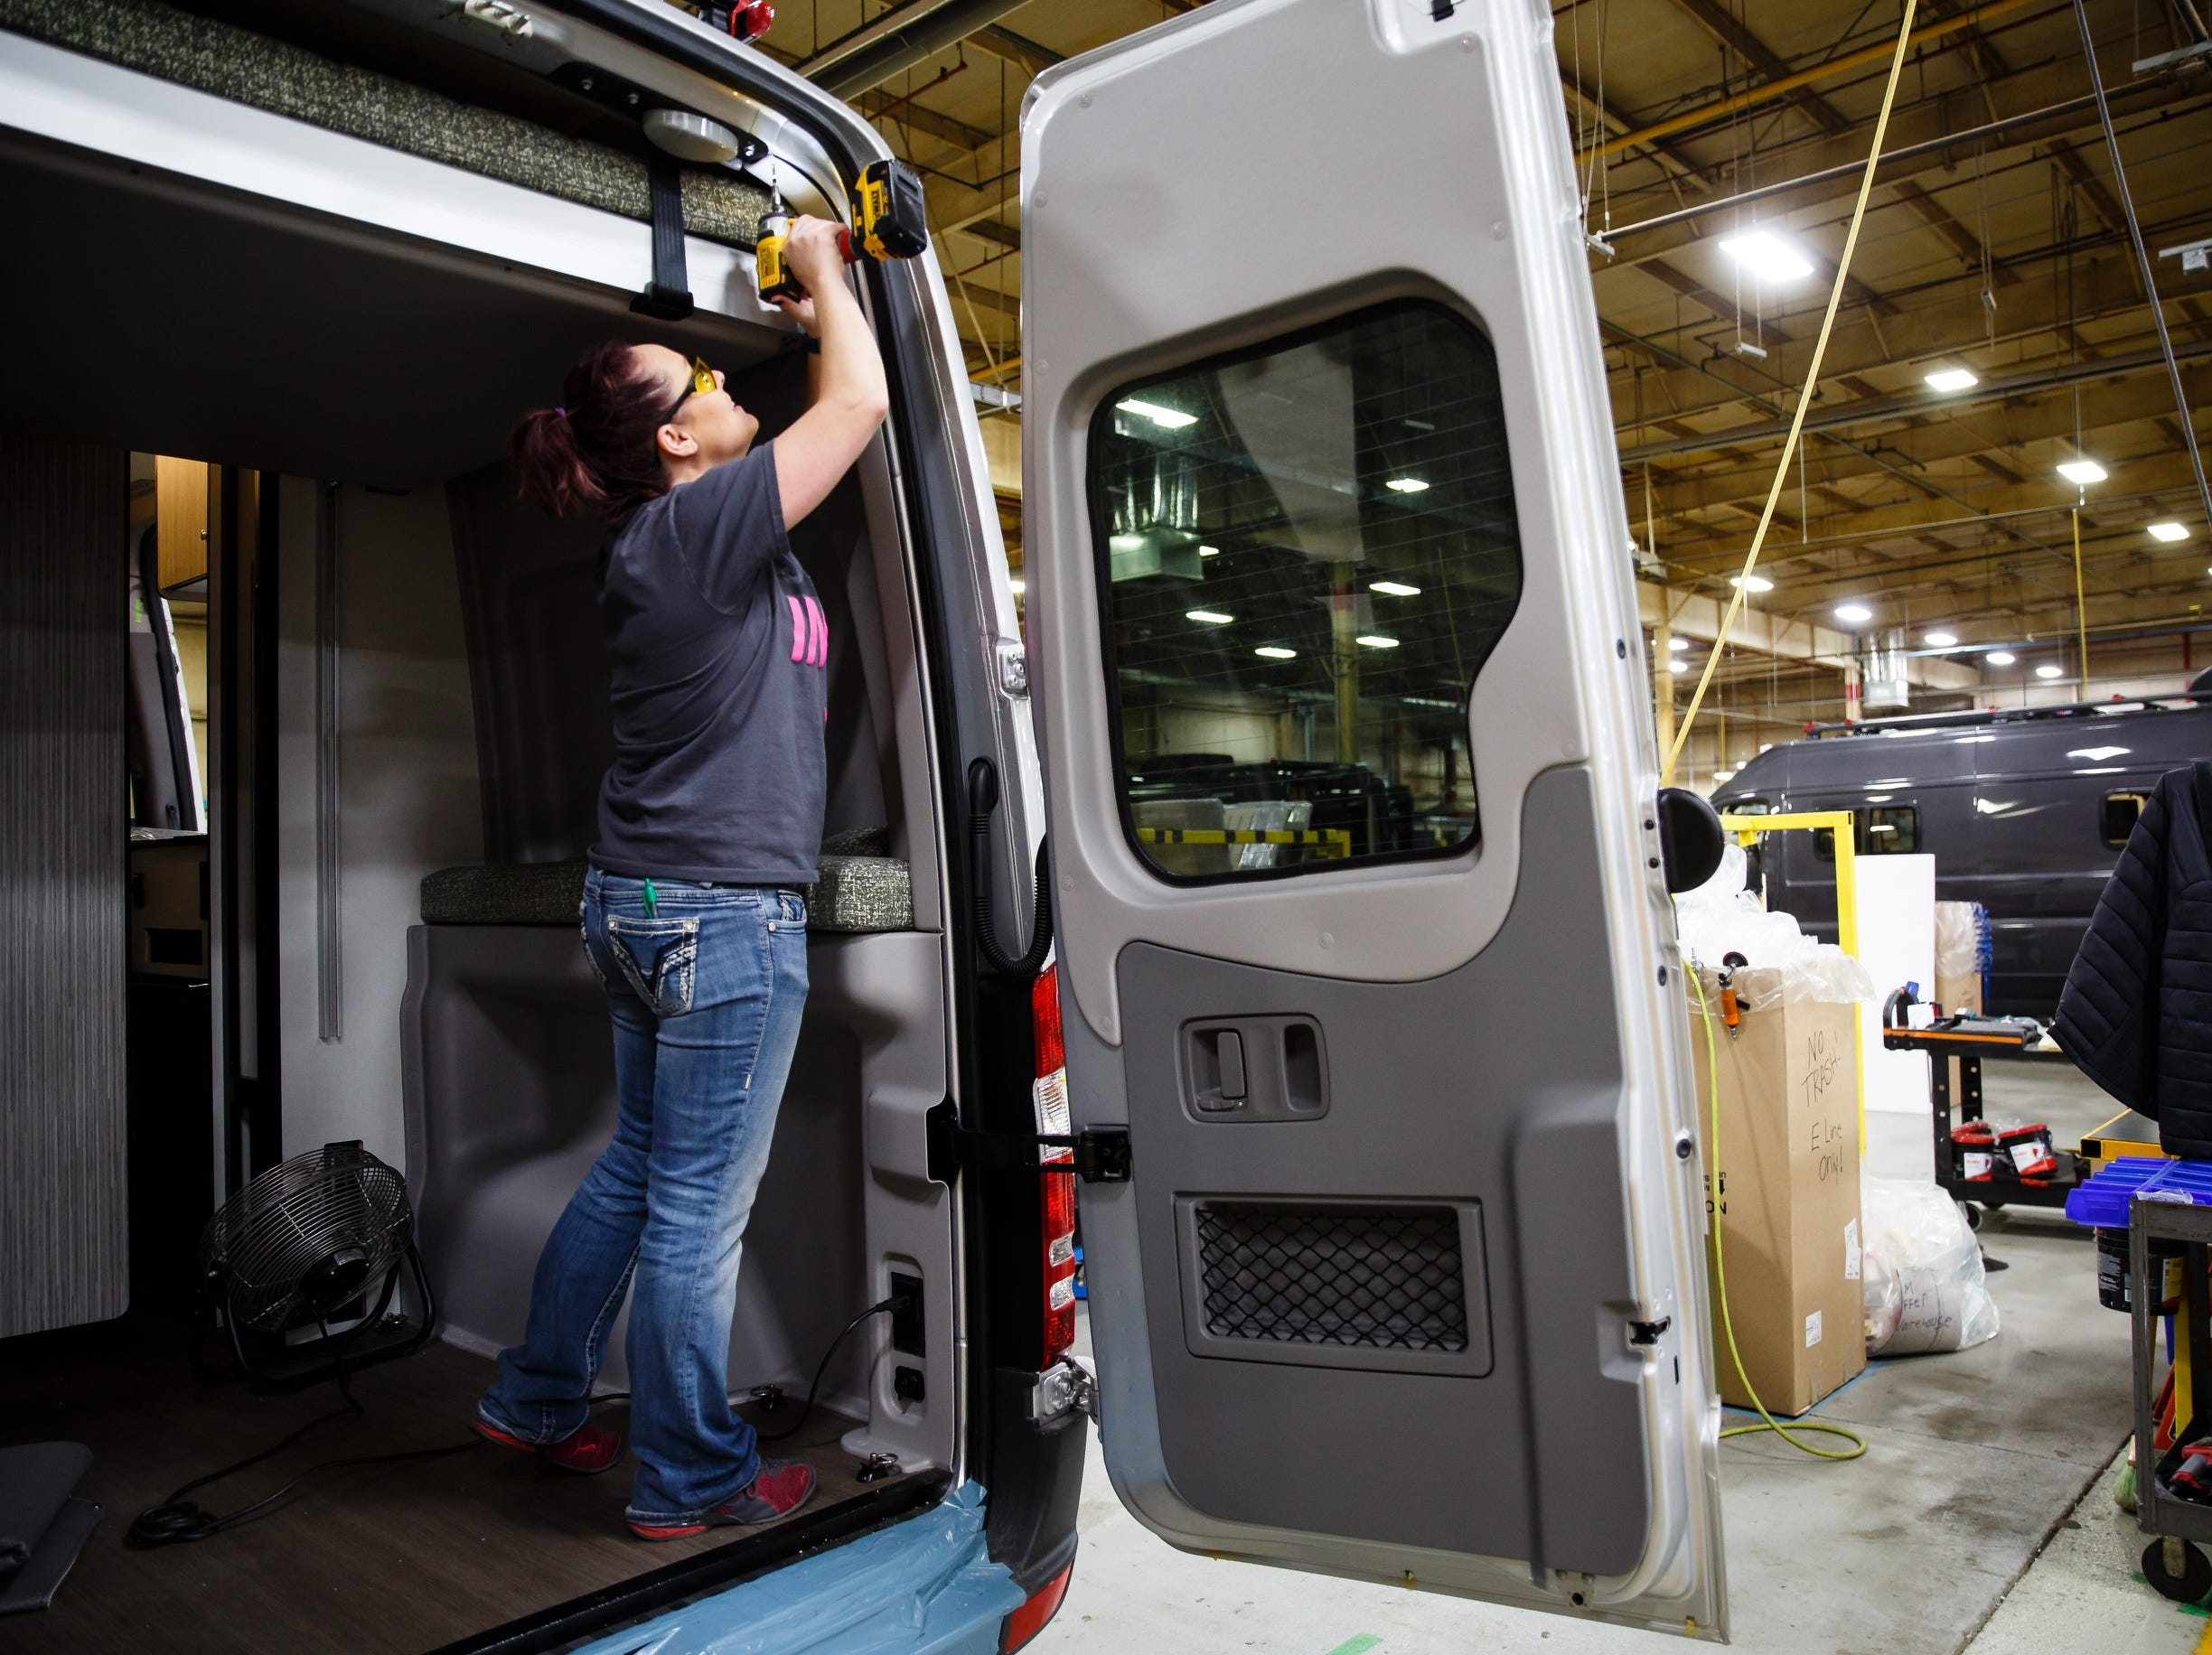 Workers install the moving bed frame on the Winnebago Revel at the companies Lake Mills factory on Wednesday, Dec. 5, 2018. The Revel, with its 4x4 and rugged nature has sparked the interest of outdoor enthusiasts and has helped the motor home manufacture rebound from poor sales during the recession.